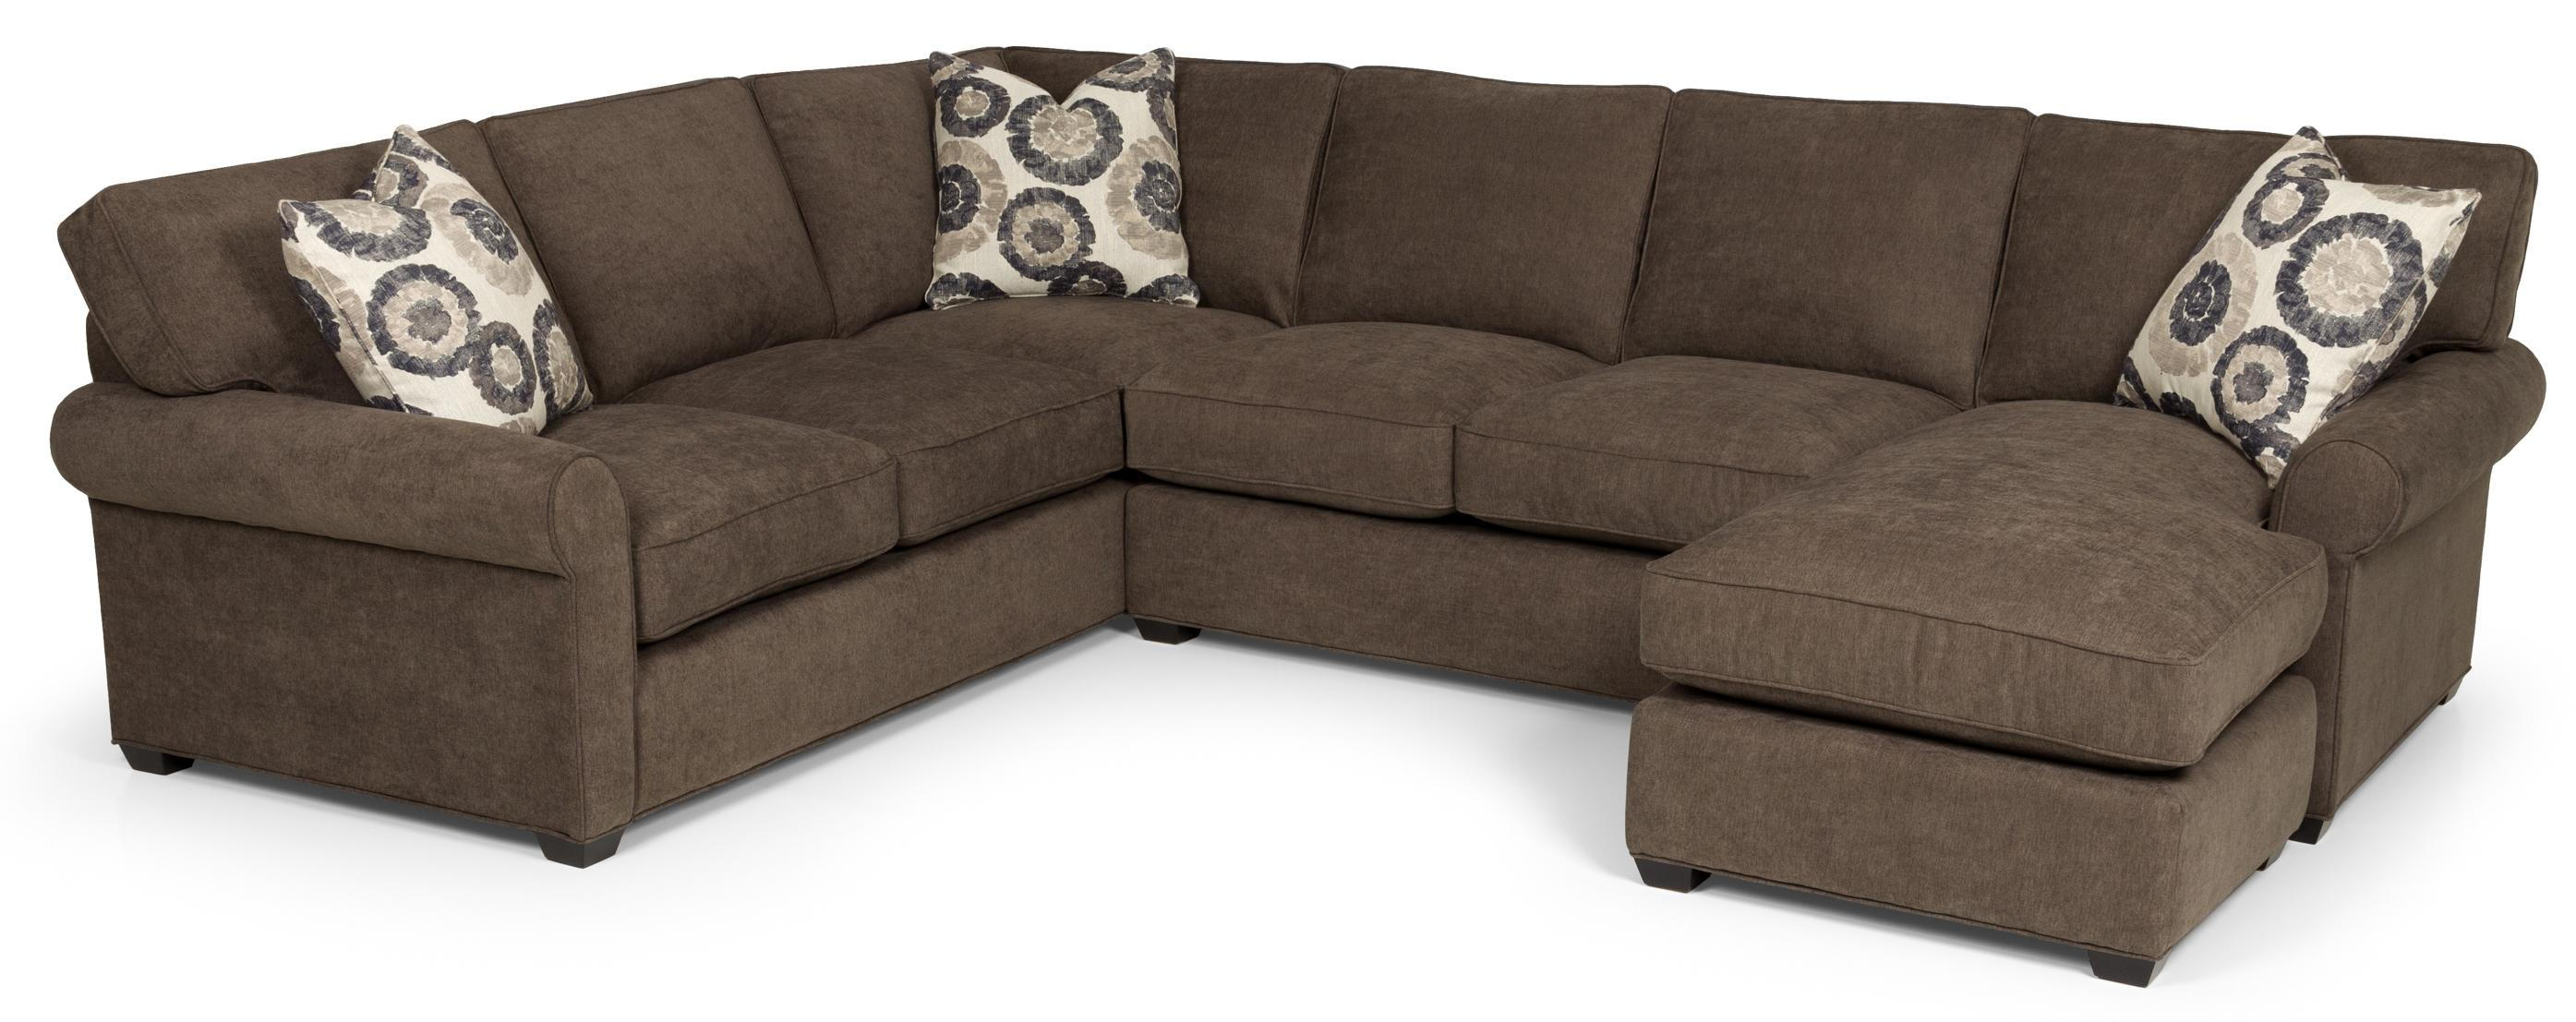 Stanton 225 Transitional 2 Piece Sectional - Item Number: 22510L+45R